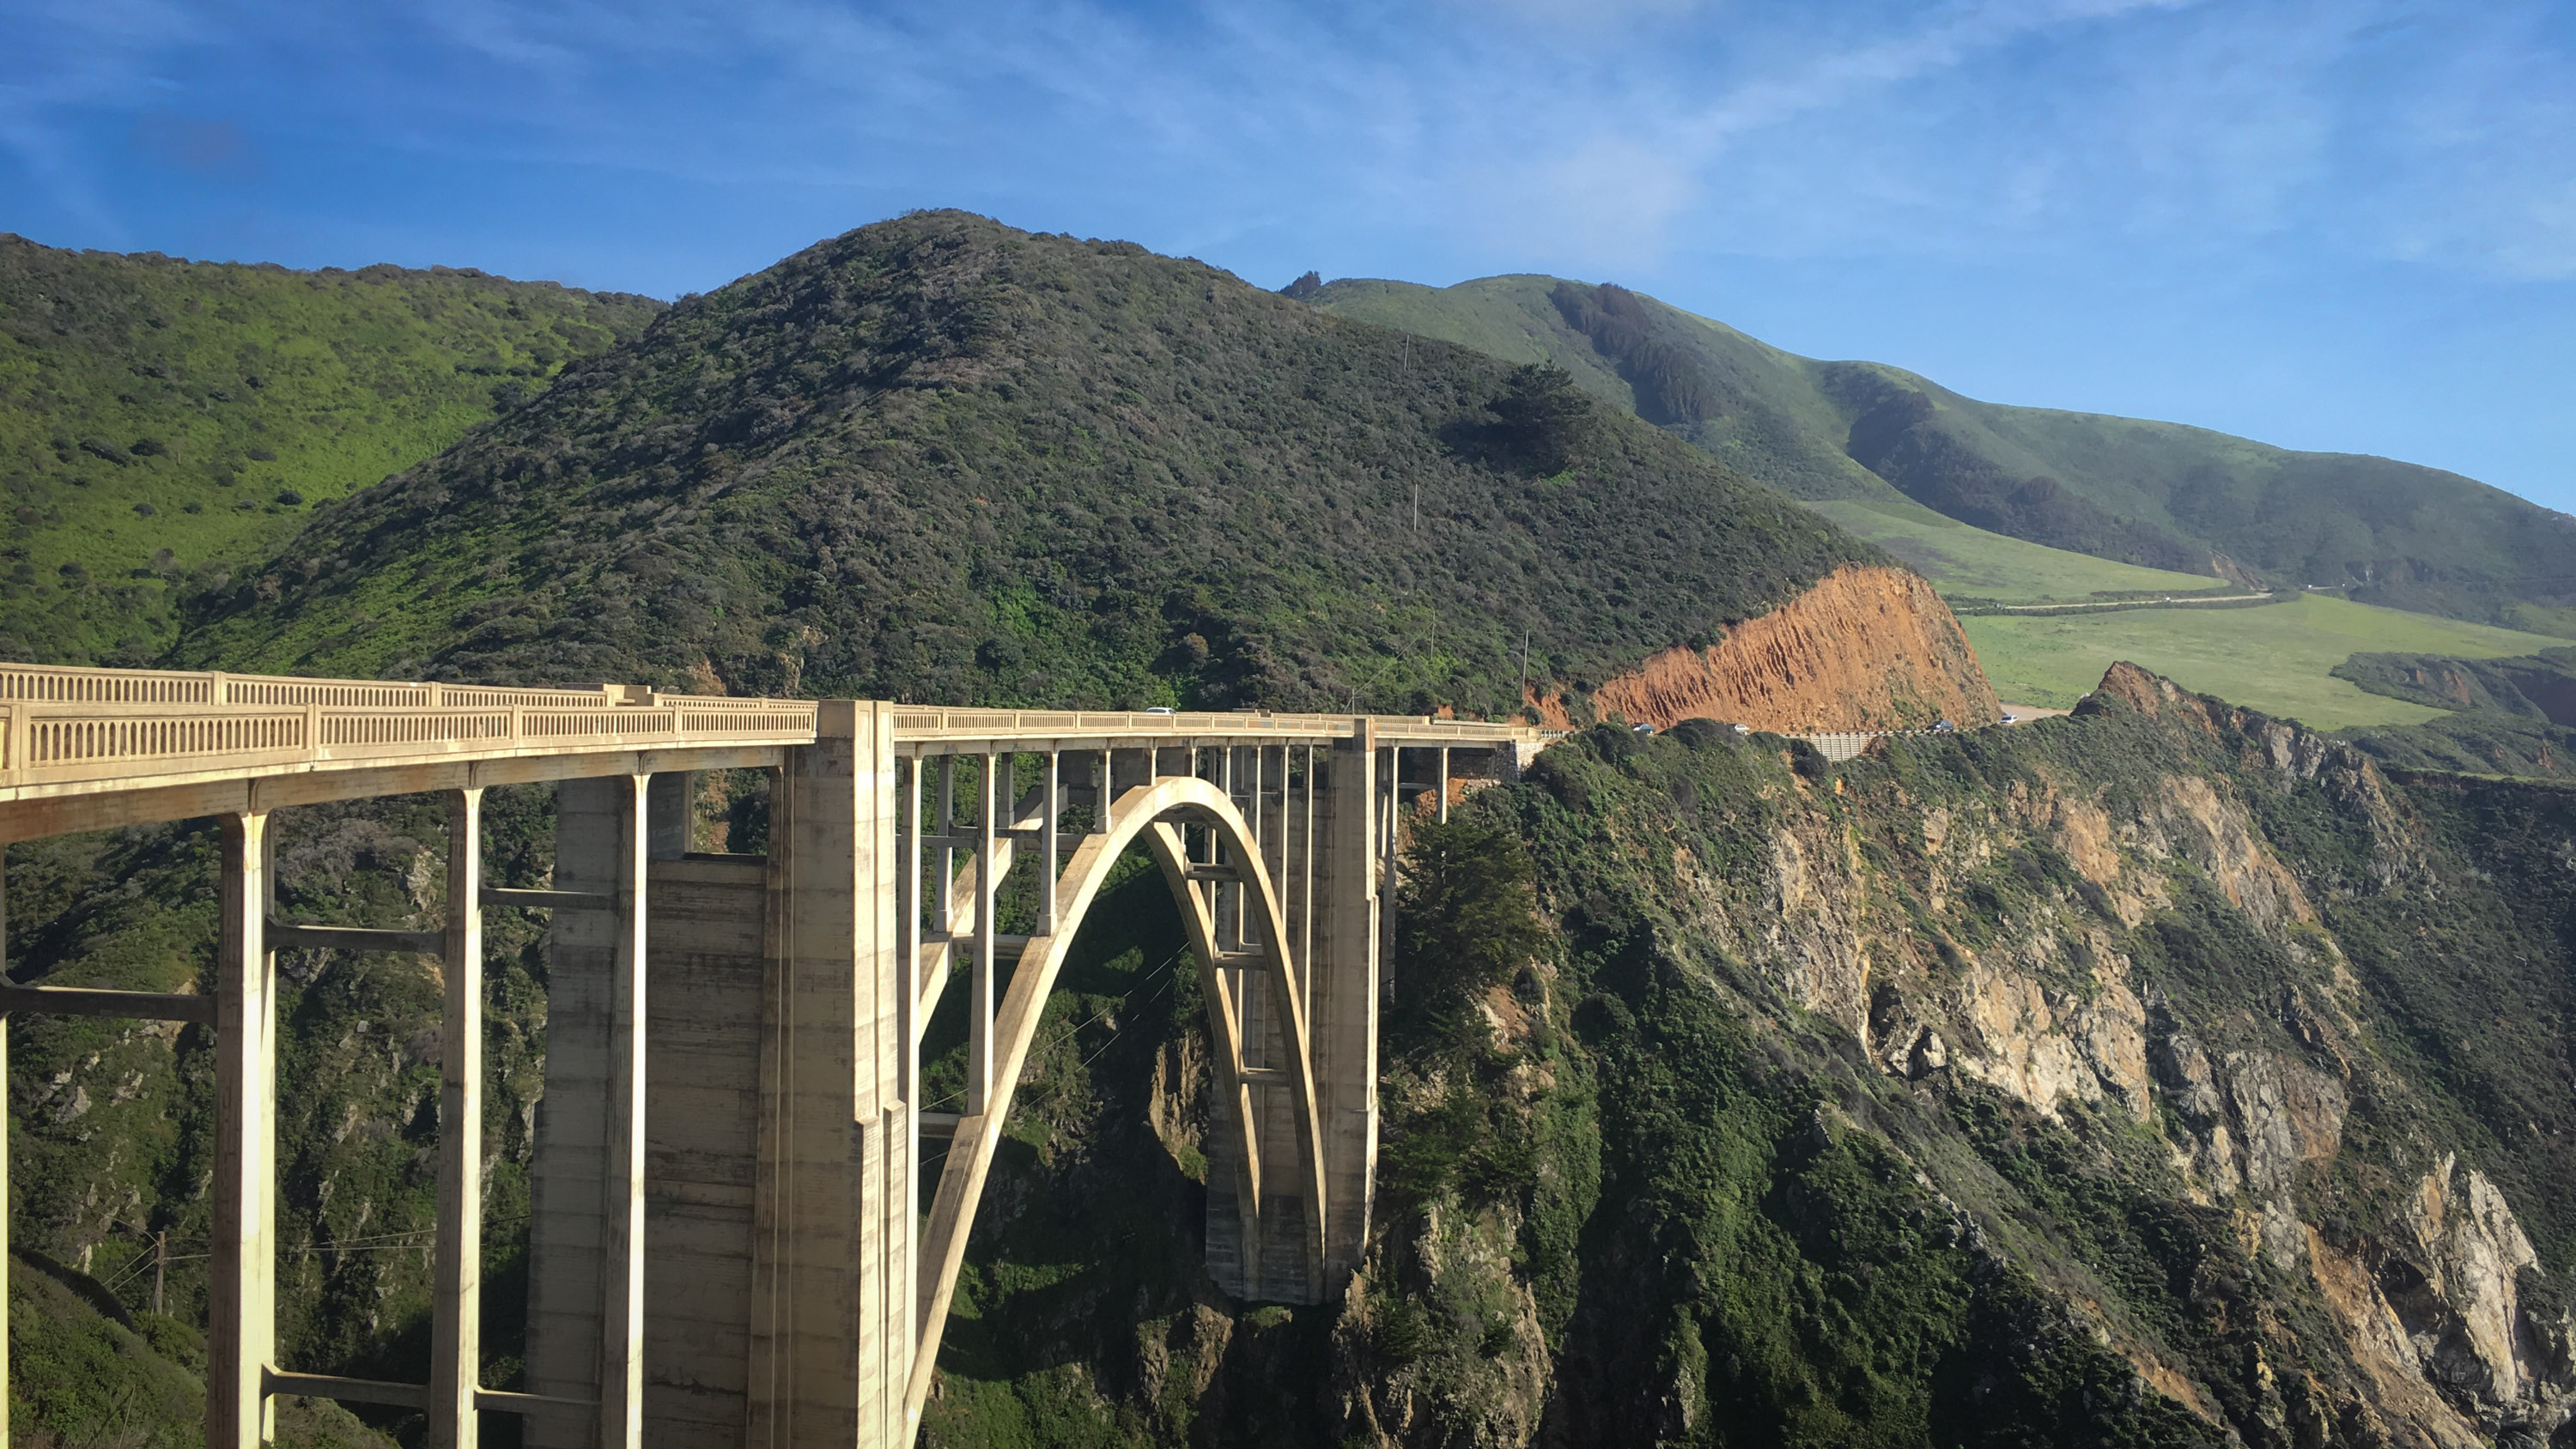 The Bixby Creek Bridge along California's Central Coast.